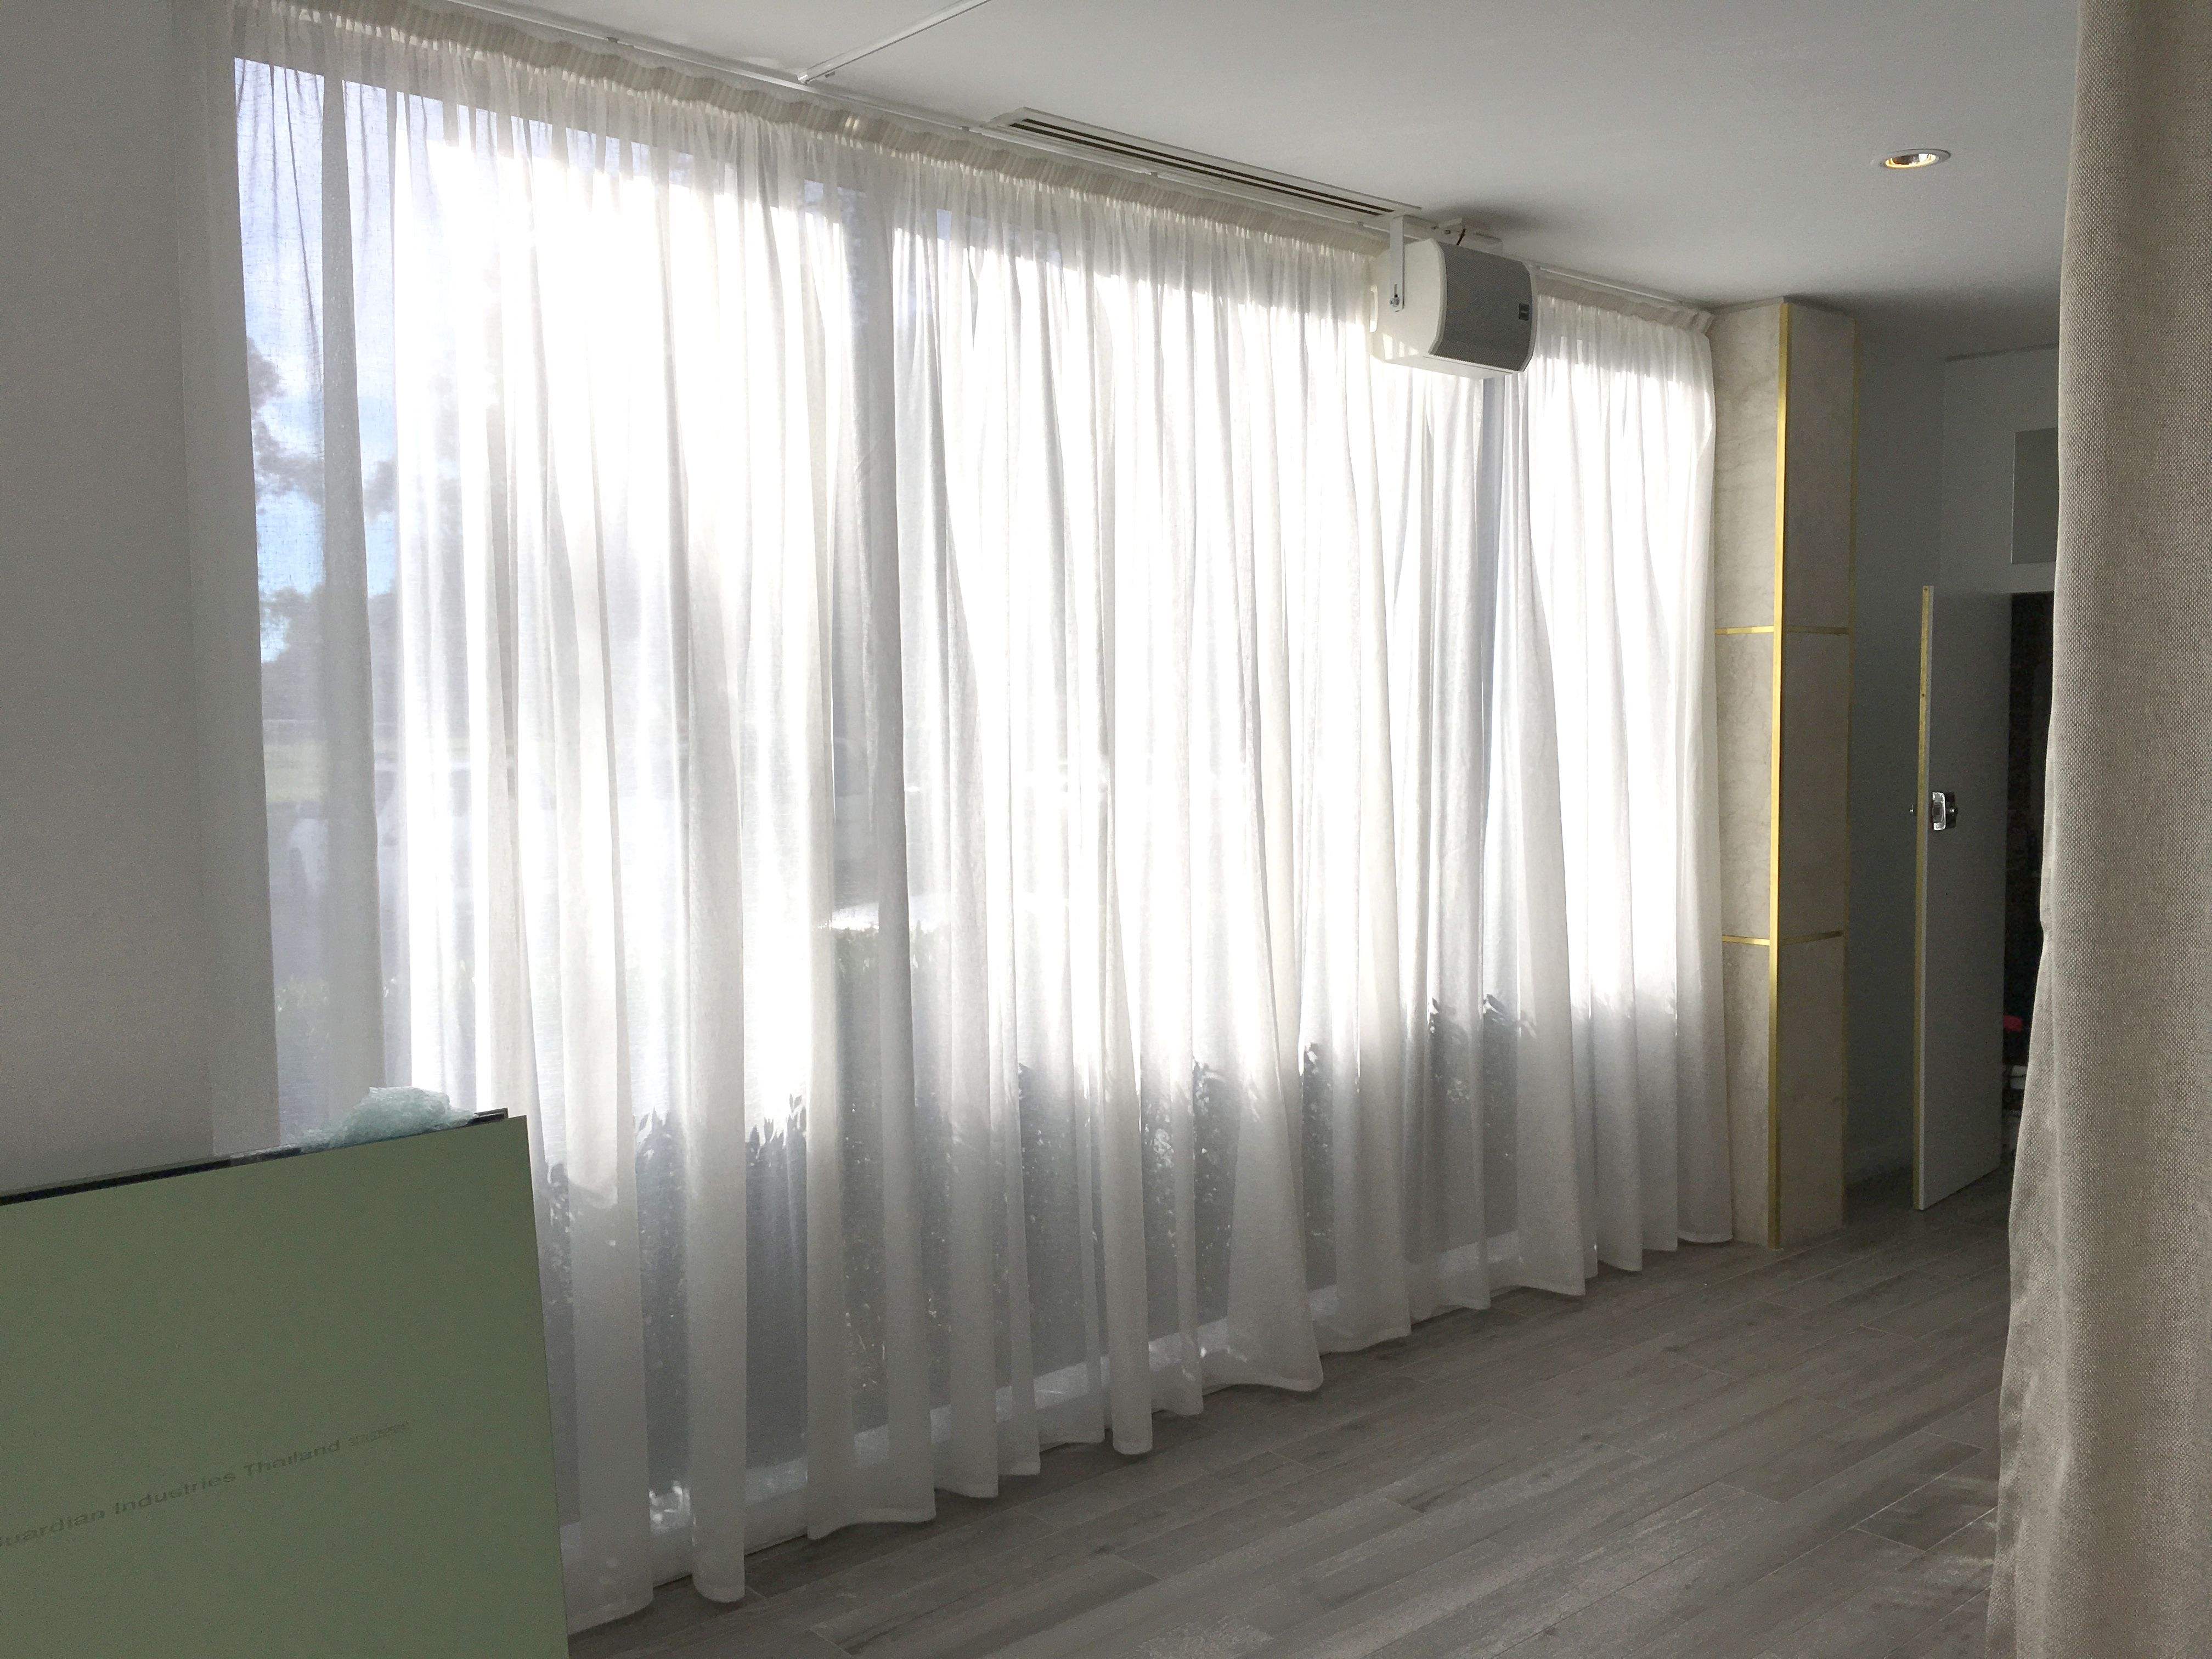 Independent Curtains Don T Just Create Beautiful Window Coverings For Homes We Also Work With Commercial Properties Like Independent Curtains Work Curta